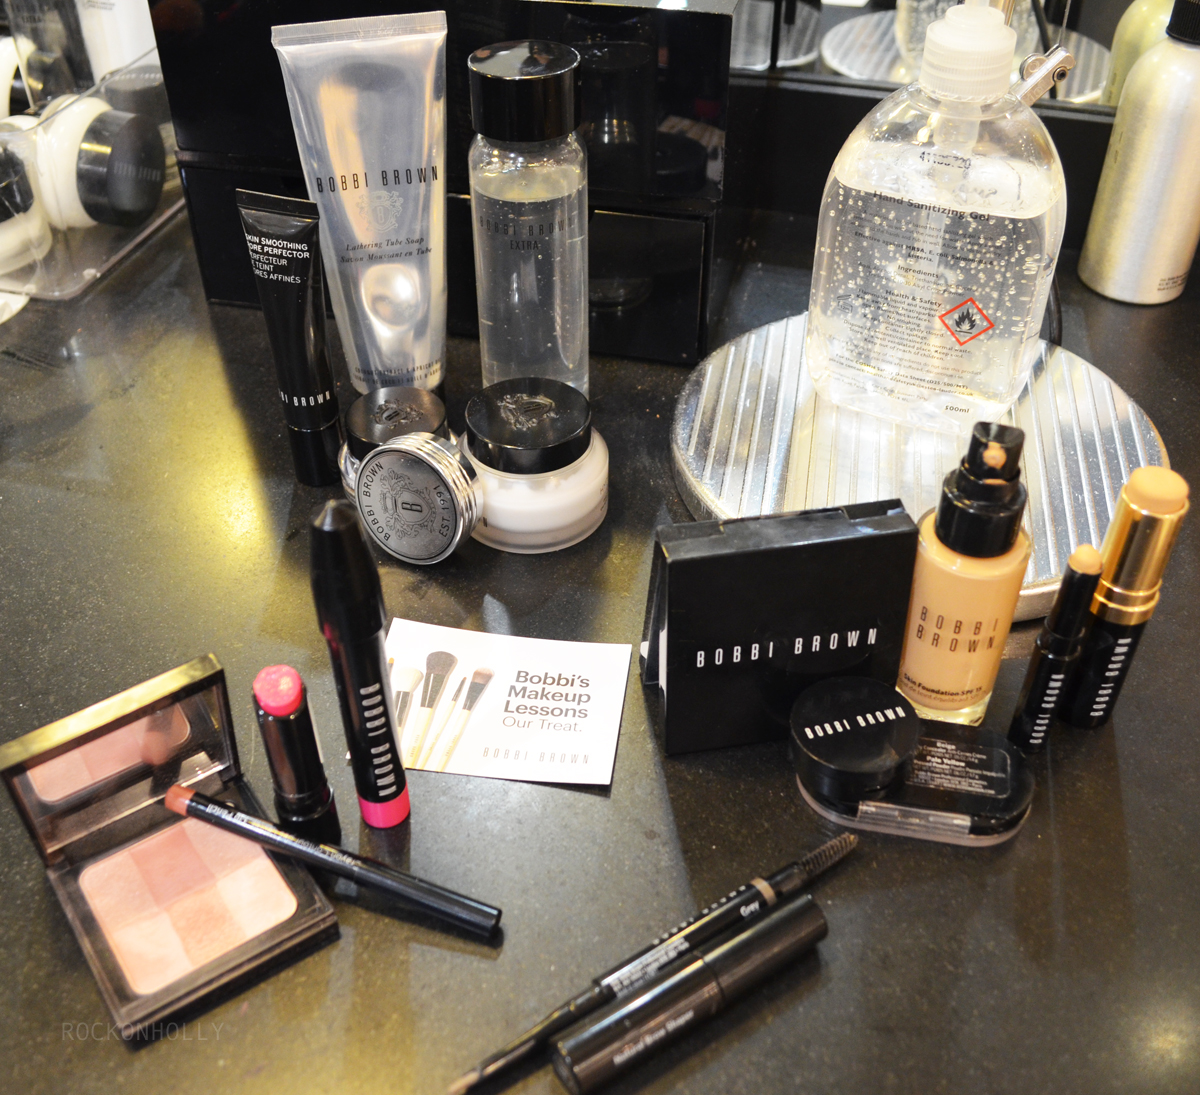 Bobbi Brown Make Up Lesson